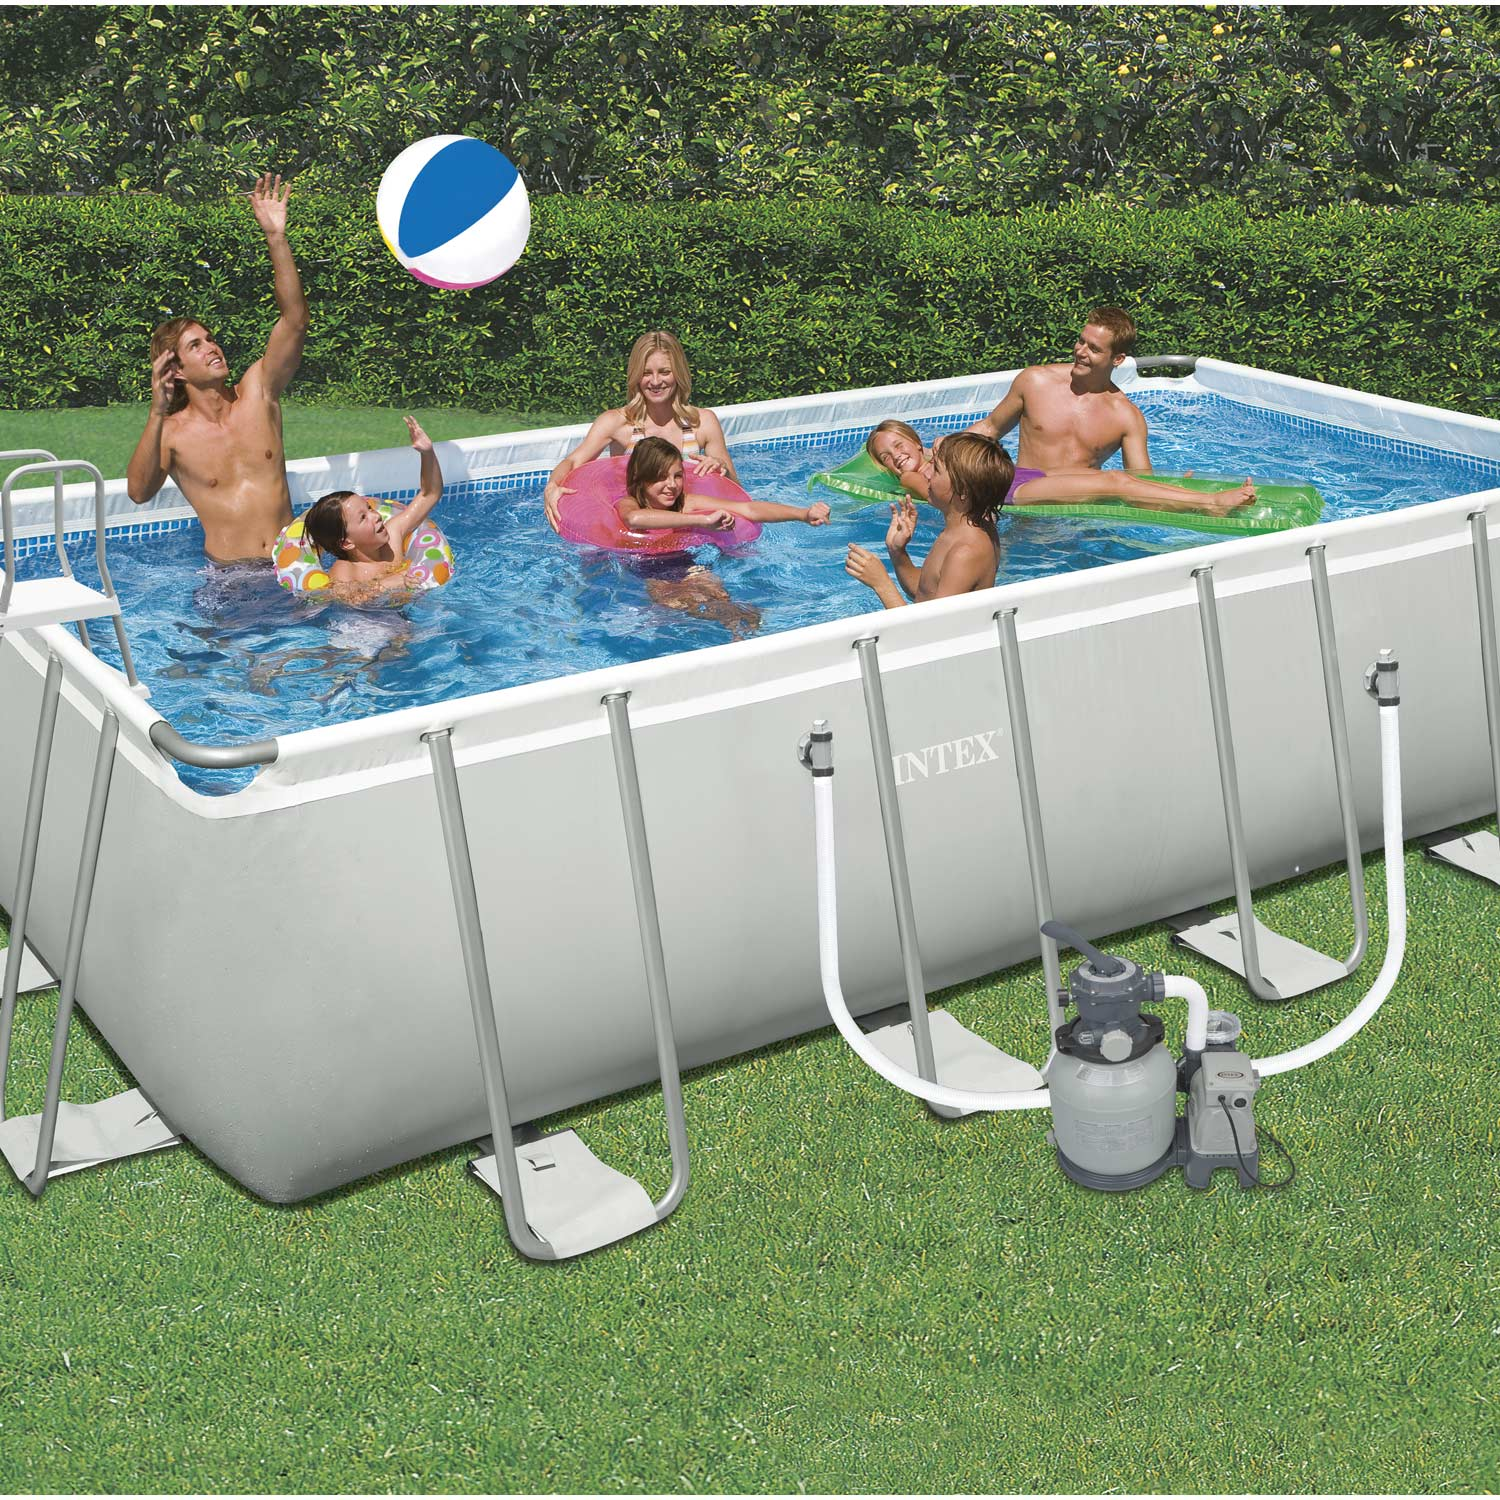 Piscine hors sol autoportante tubulaire intex l x l for Piscine de sol